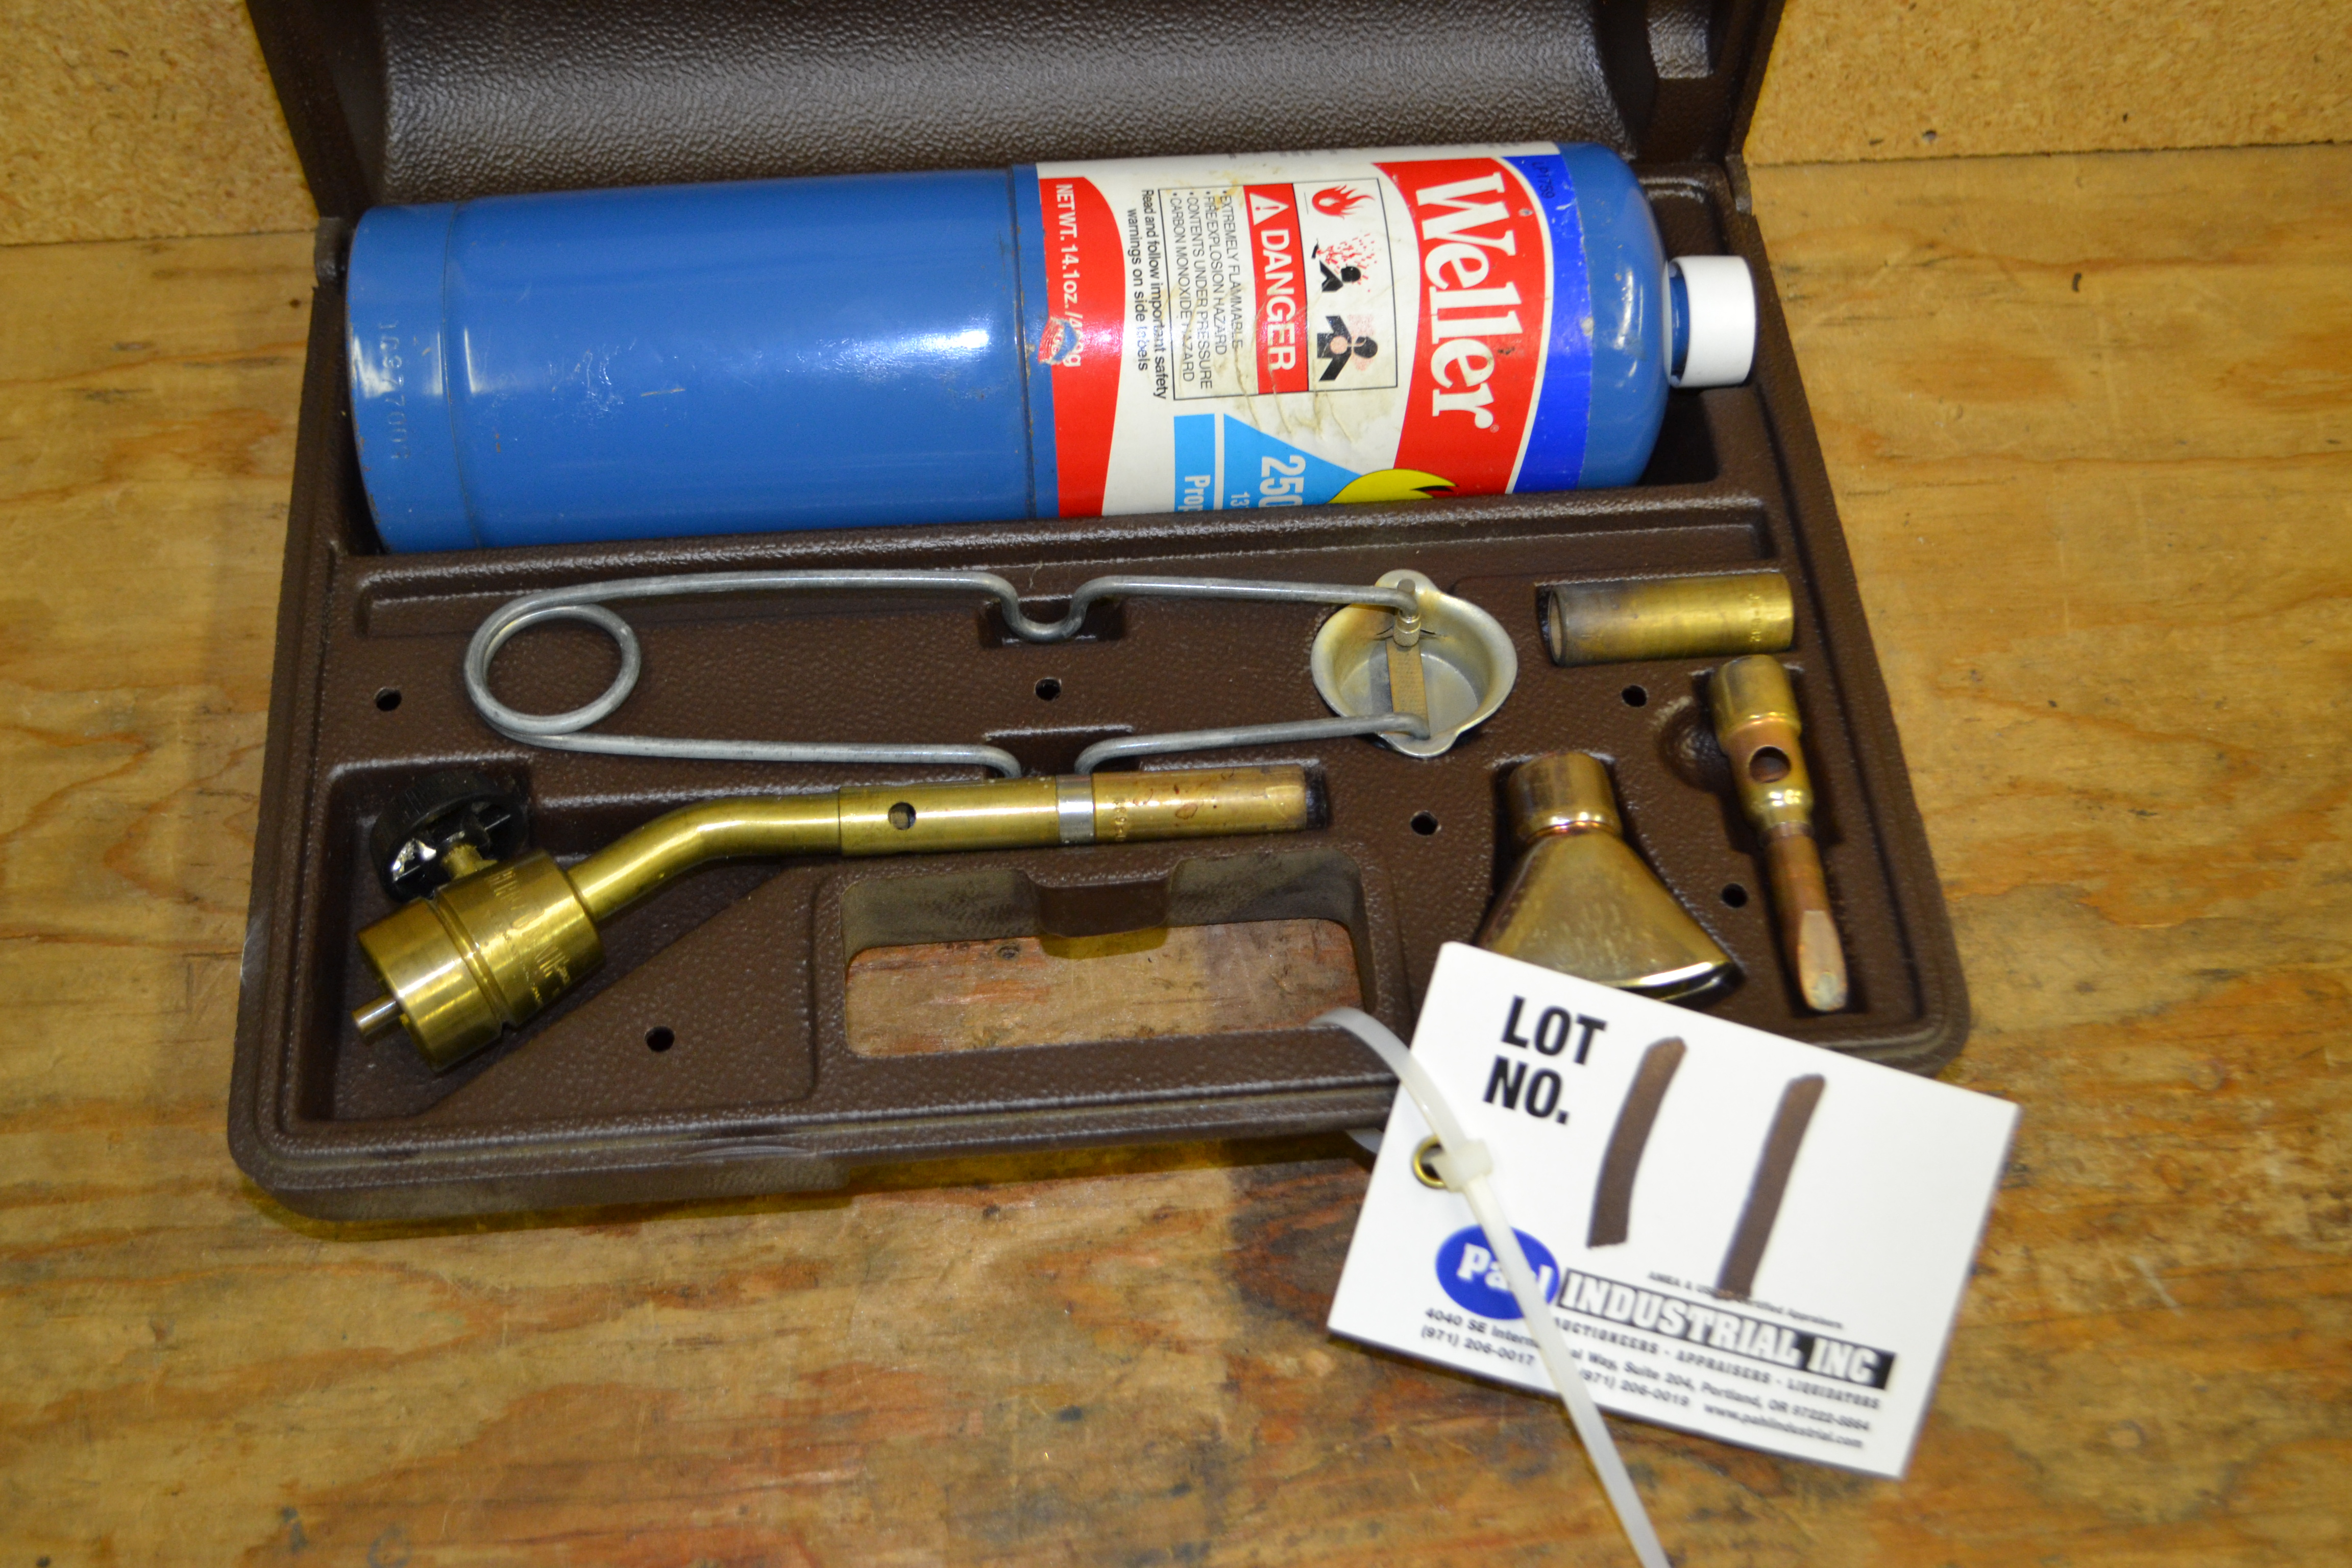 Weller Propane mini-torch with tips